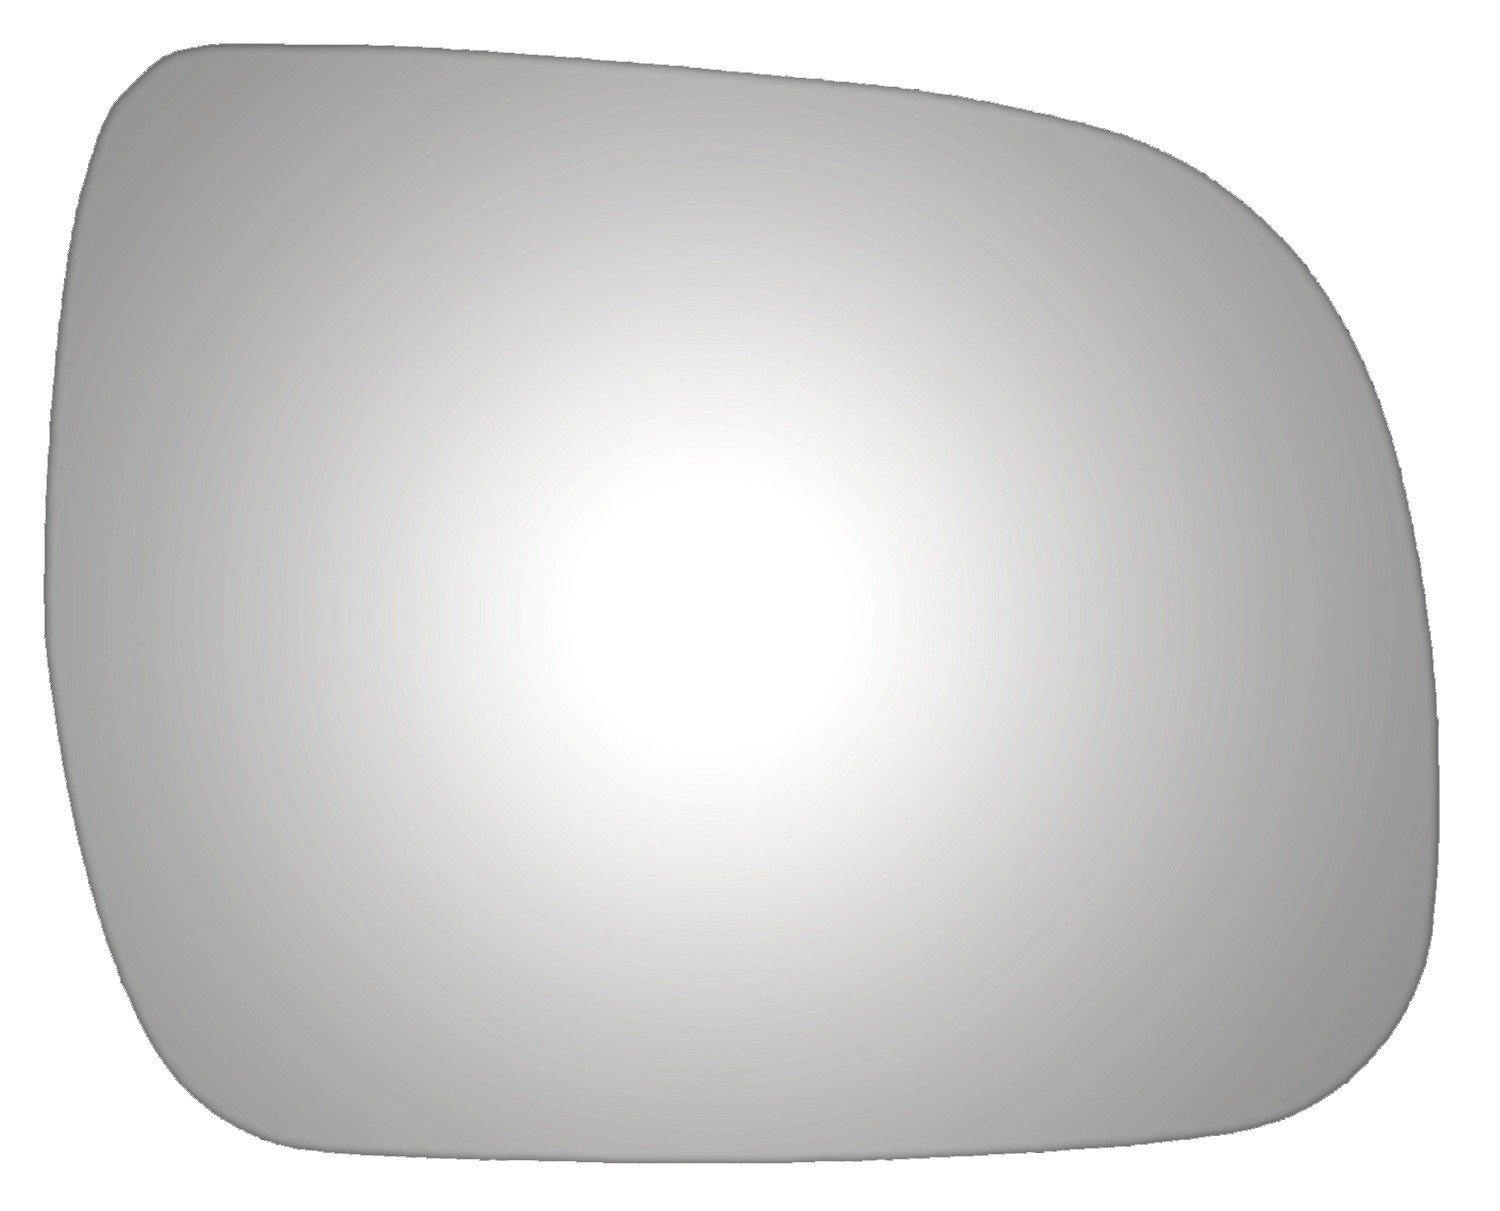 Mirrex 83689 Fits Toyota Highlander Tacoma Vin starts with 1,4 or 5 Glass Only Right Passenger Side Replacement Mirror Glass for 2010 2011 2012 2013 2014 2015 Adhesive//Installation Inst Included